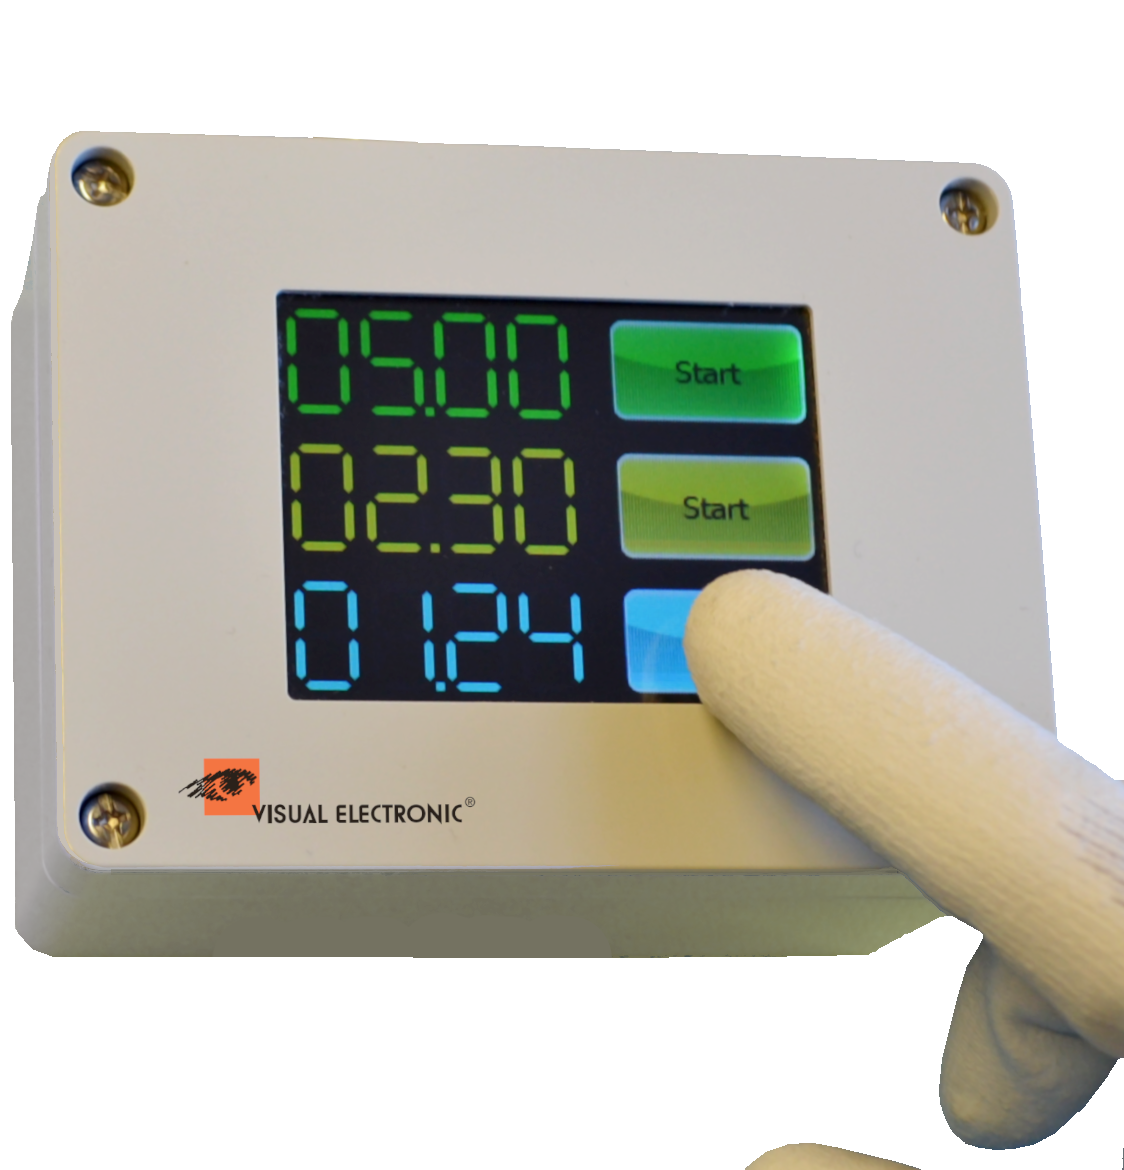 Control panel, medical technology, timer